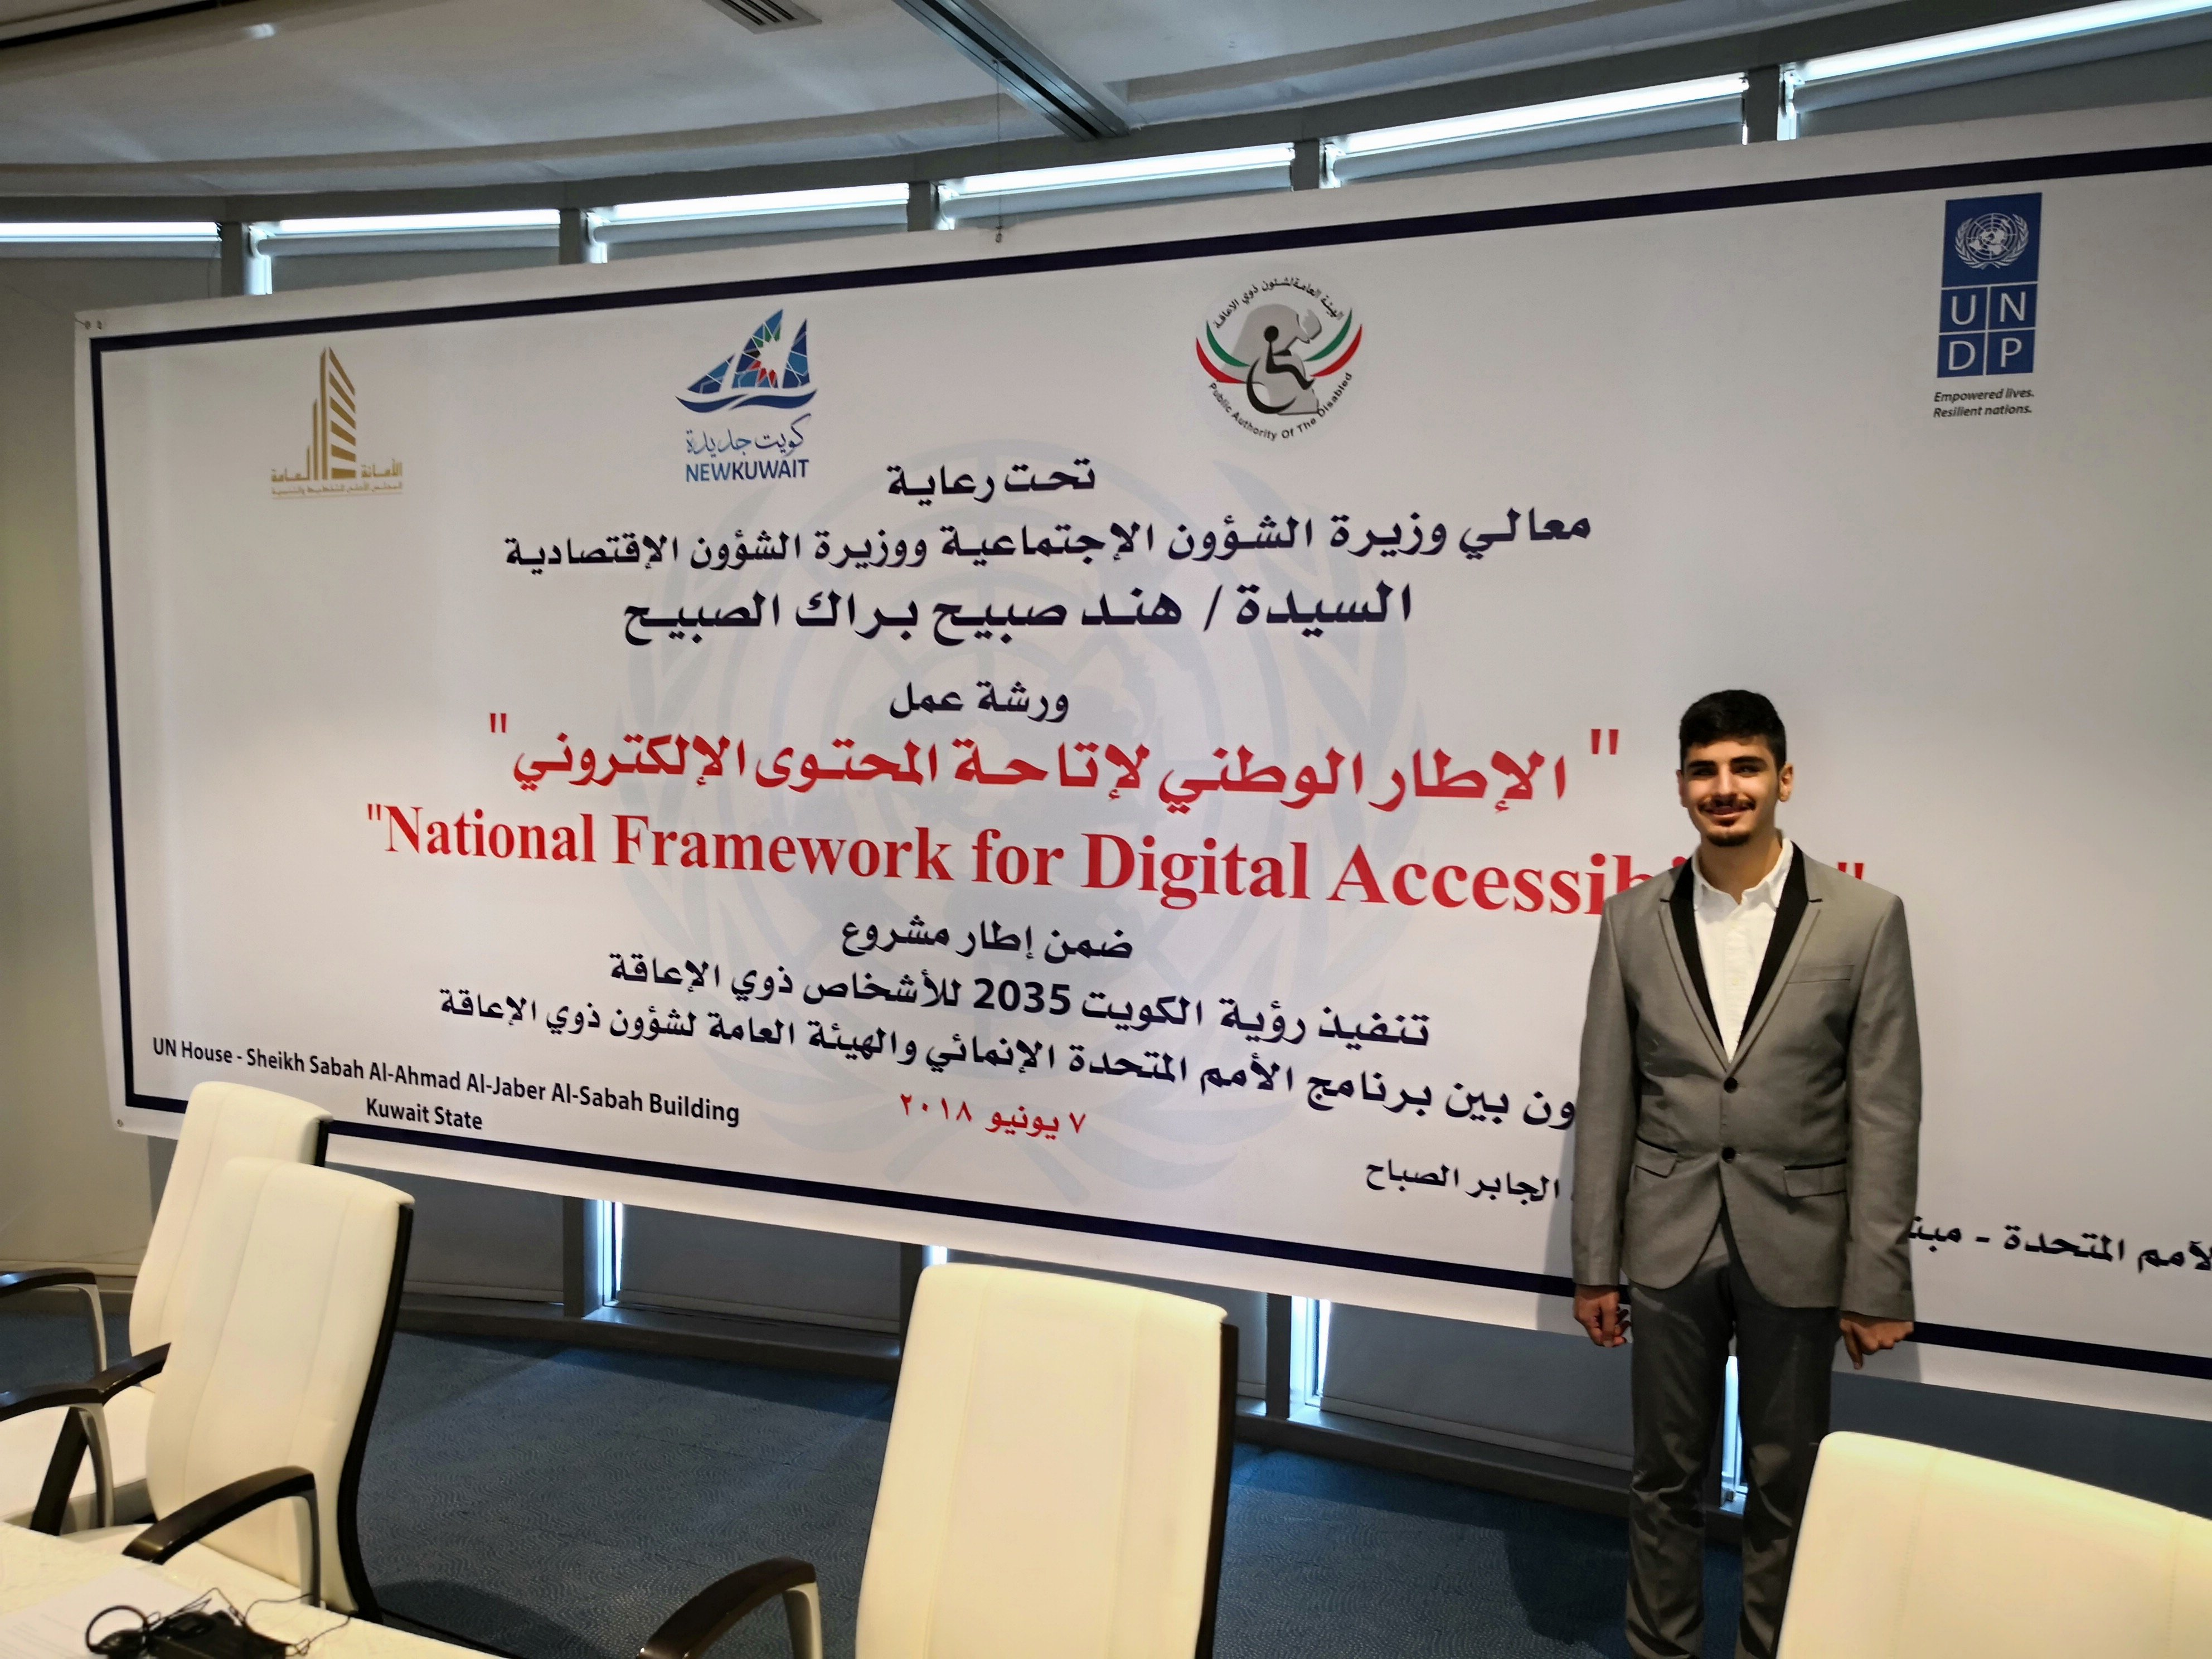 """Photo of Ahmad Albahar in front of a banner in arabic that says """"National Framework for Digital Accessibility"""""""